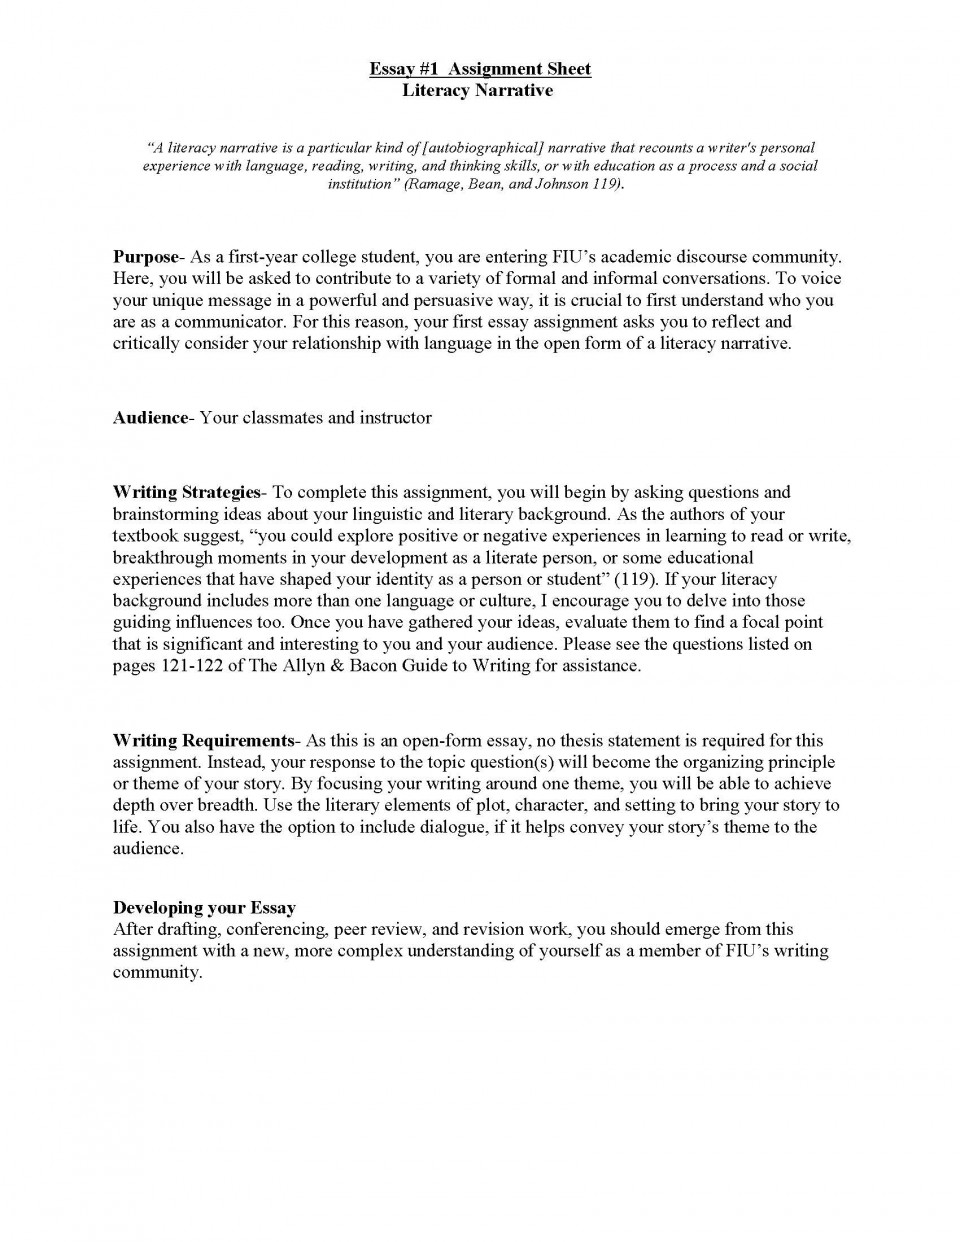 001 Literacy Narrative Unit Assignment Spring 2012 Page 1 Research Paper Personal Essay Wonderful Topics 960